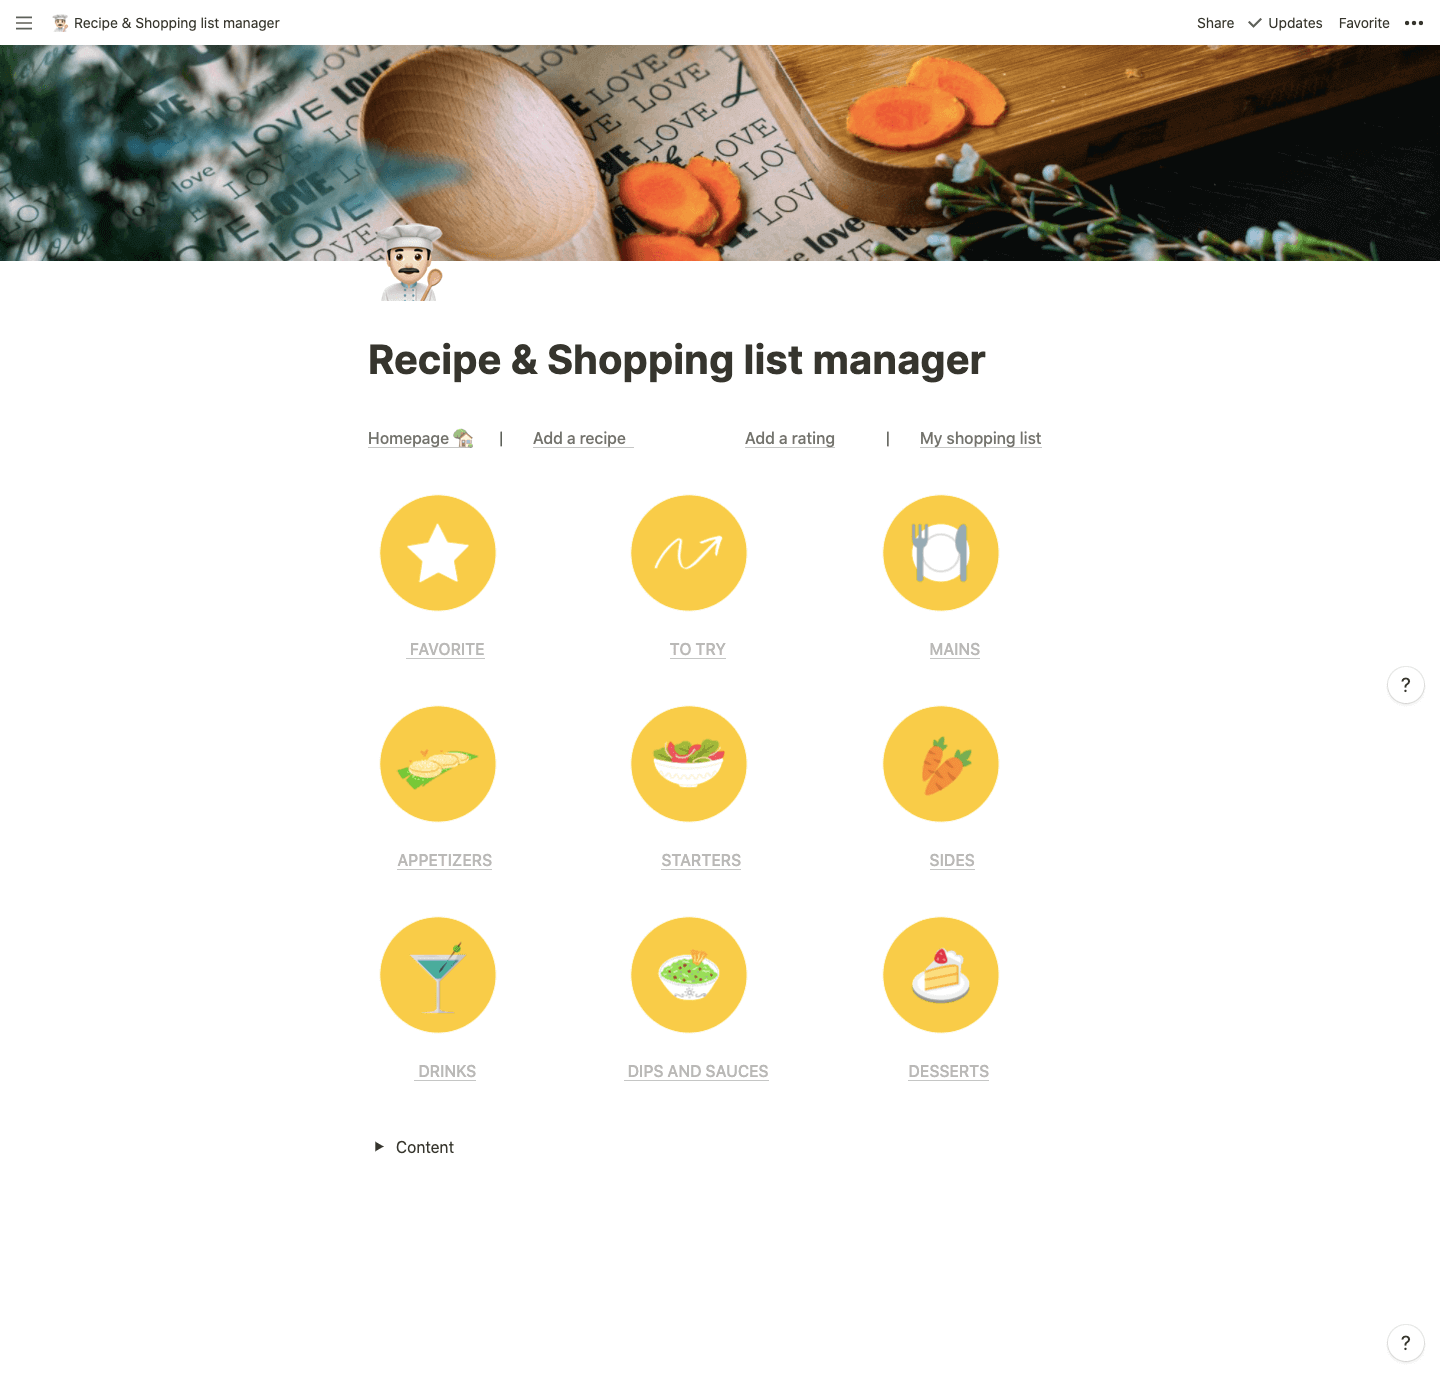 Recipe & Shopping list manager